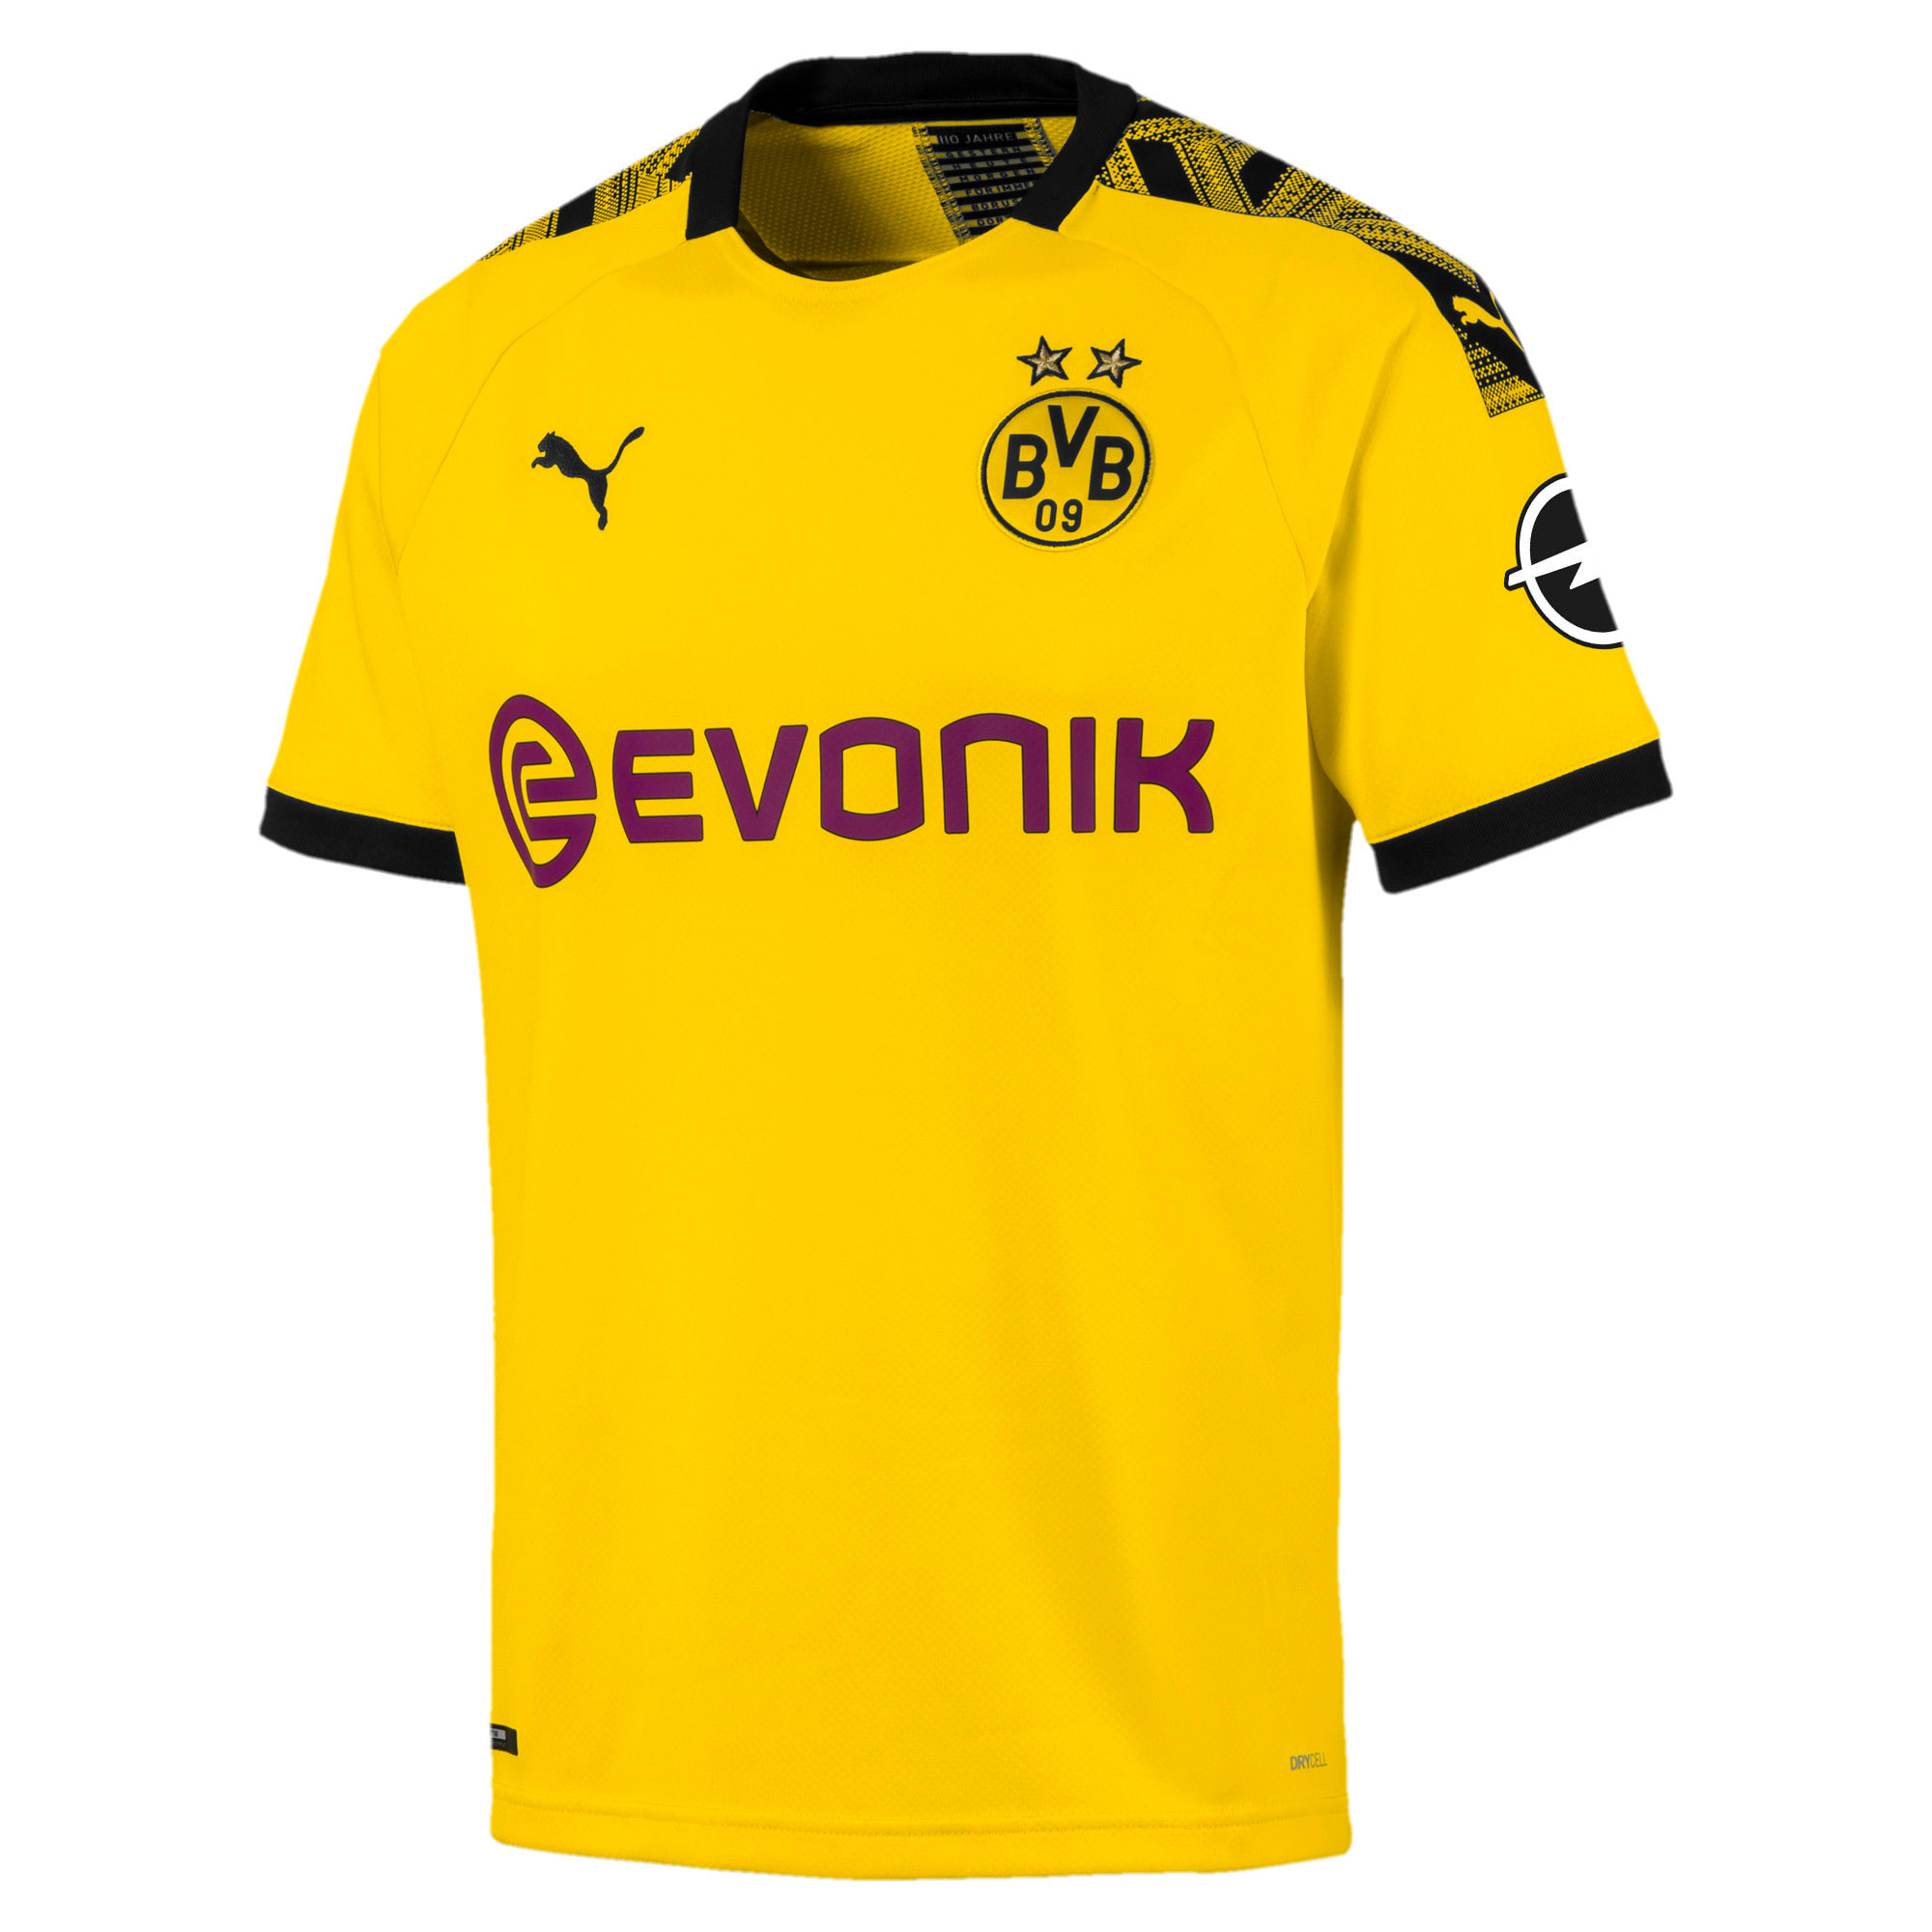 Thumbnail 1 of BVB Men's Home Replica Jersey, Cyber Yellow-Puma Black, medium